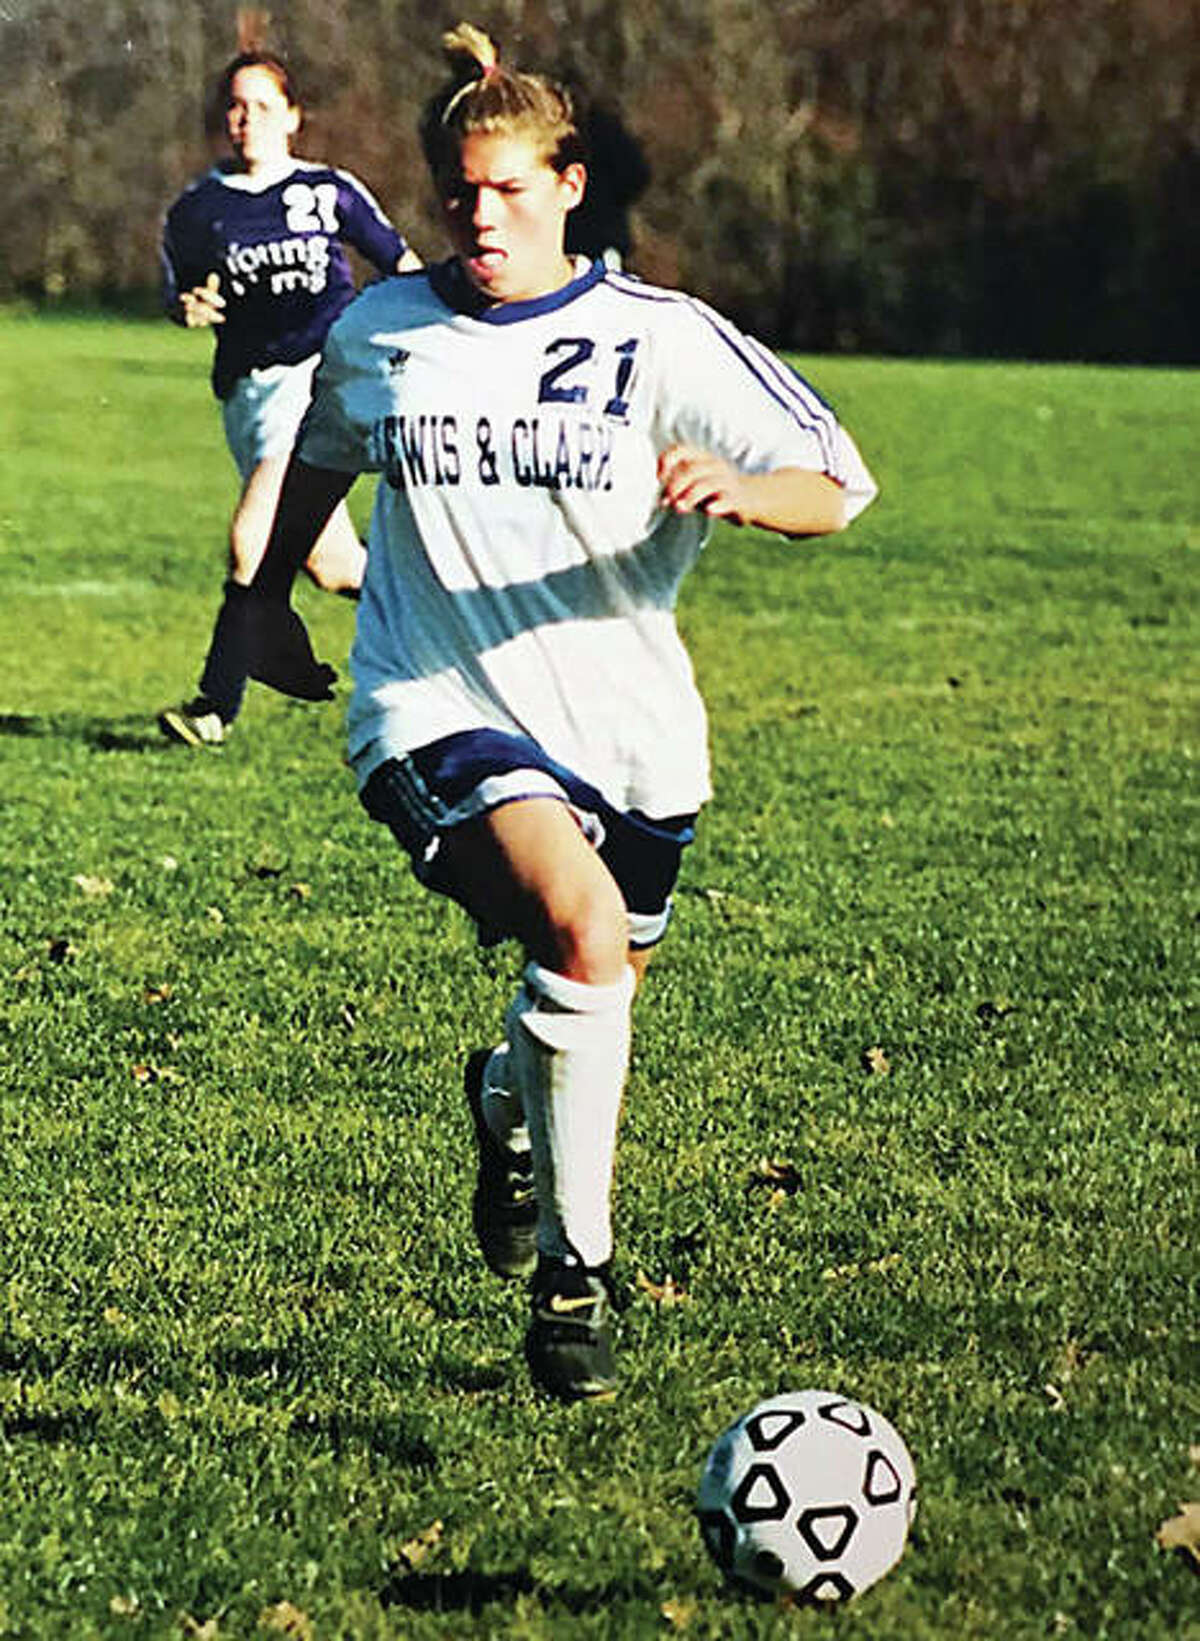 Angie Bode of Lewis and Clark controls the ball during the 1999 national championship season. Bode, now Bode-Parsons, was elected to the NJCAA Women's Soccer Hall of Fame earlier this week,